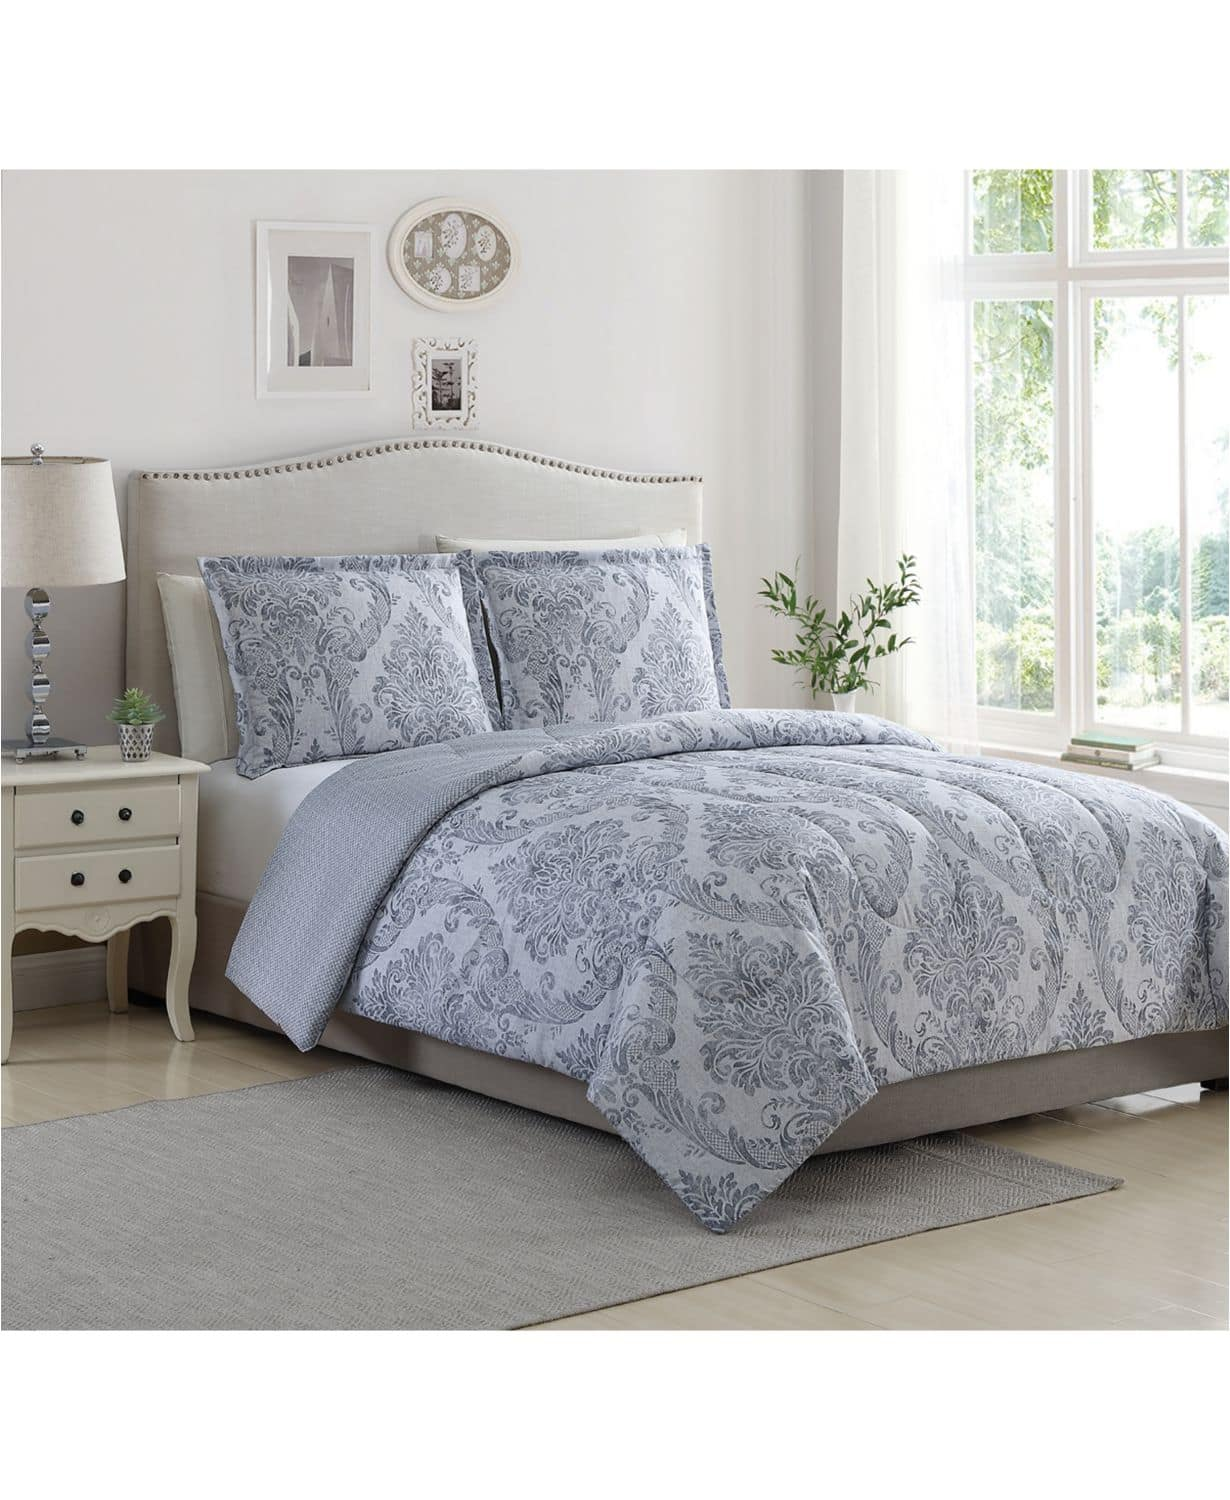 Macy's 3-Piece Comforter Sets (Various Styles) King or Full/Queen $20 + Free Store Pickup